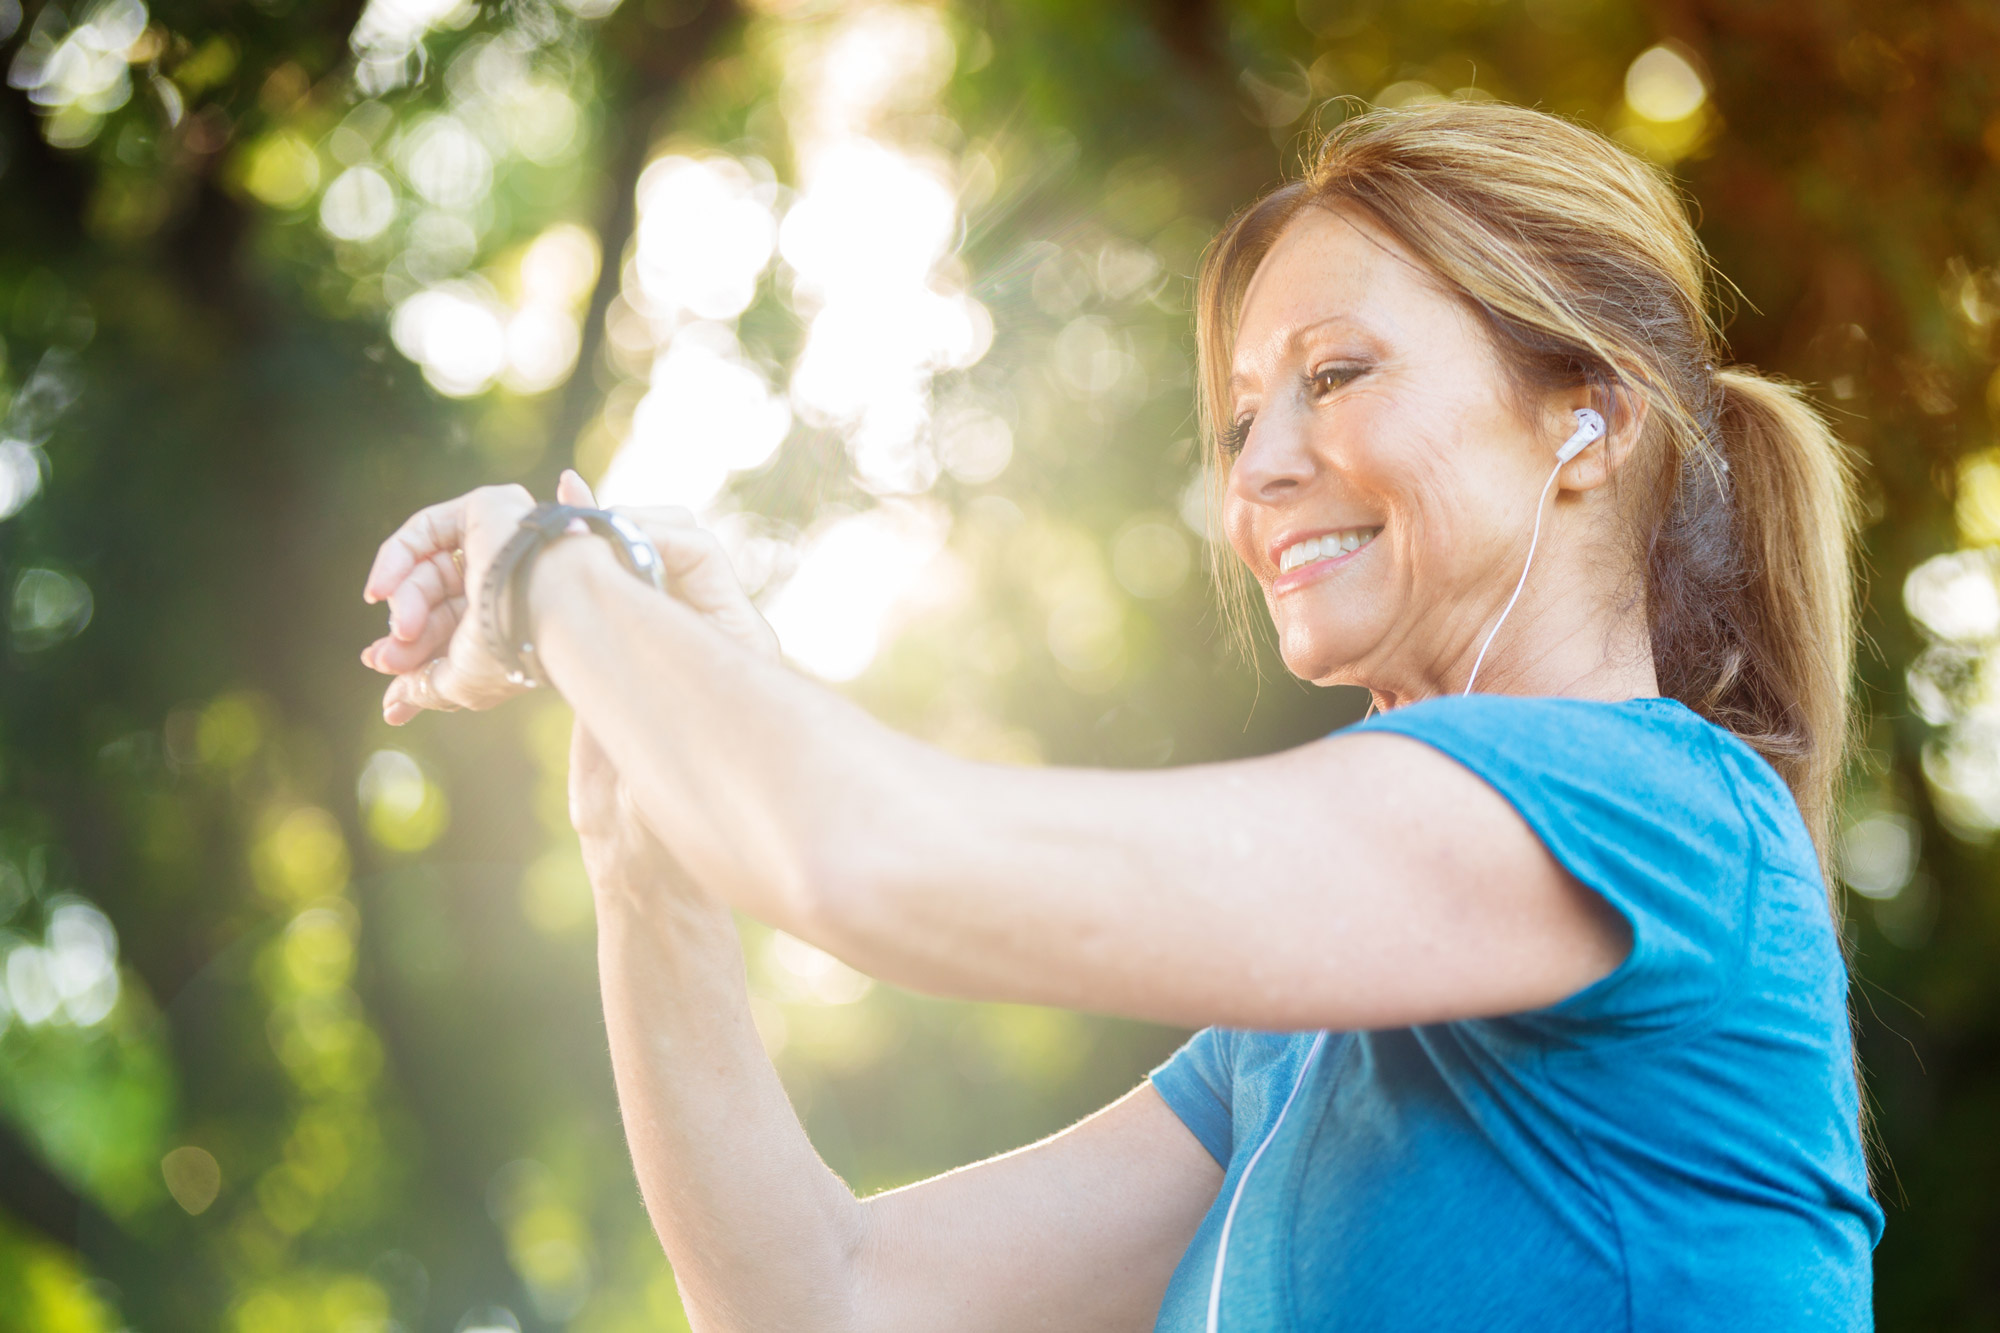 woman exercising and looking at fitness tracker